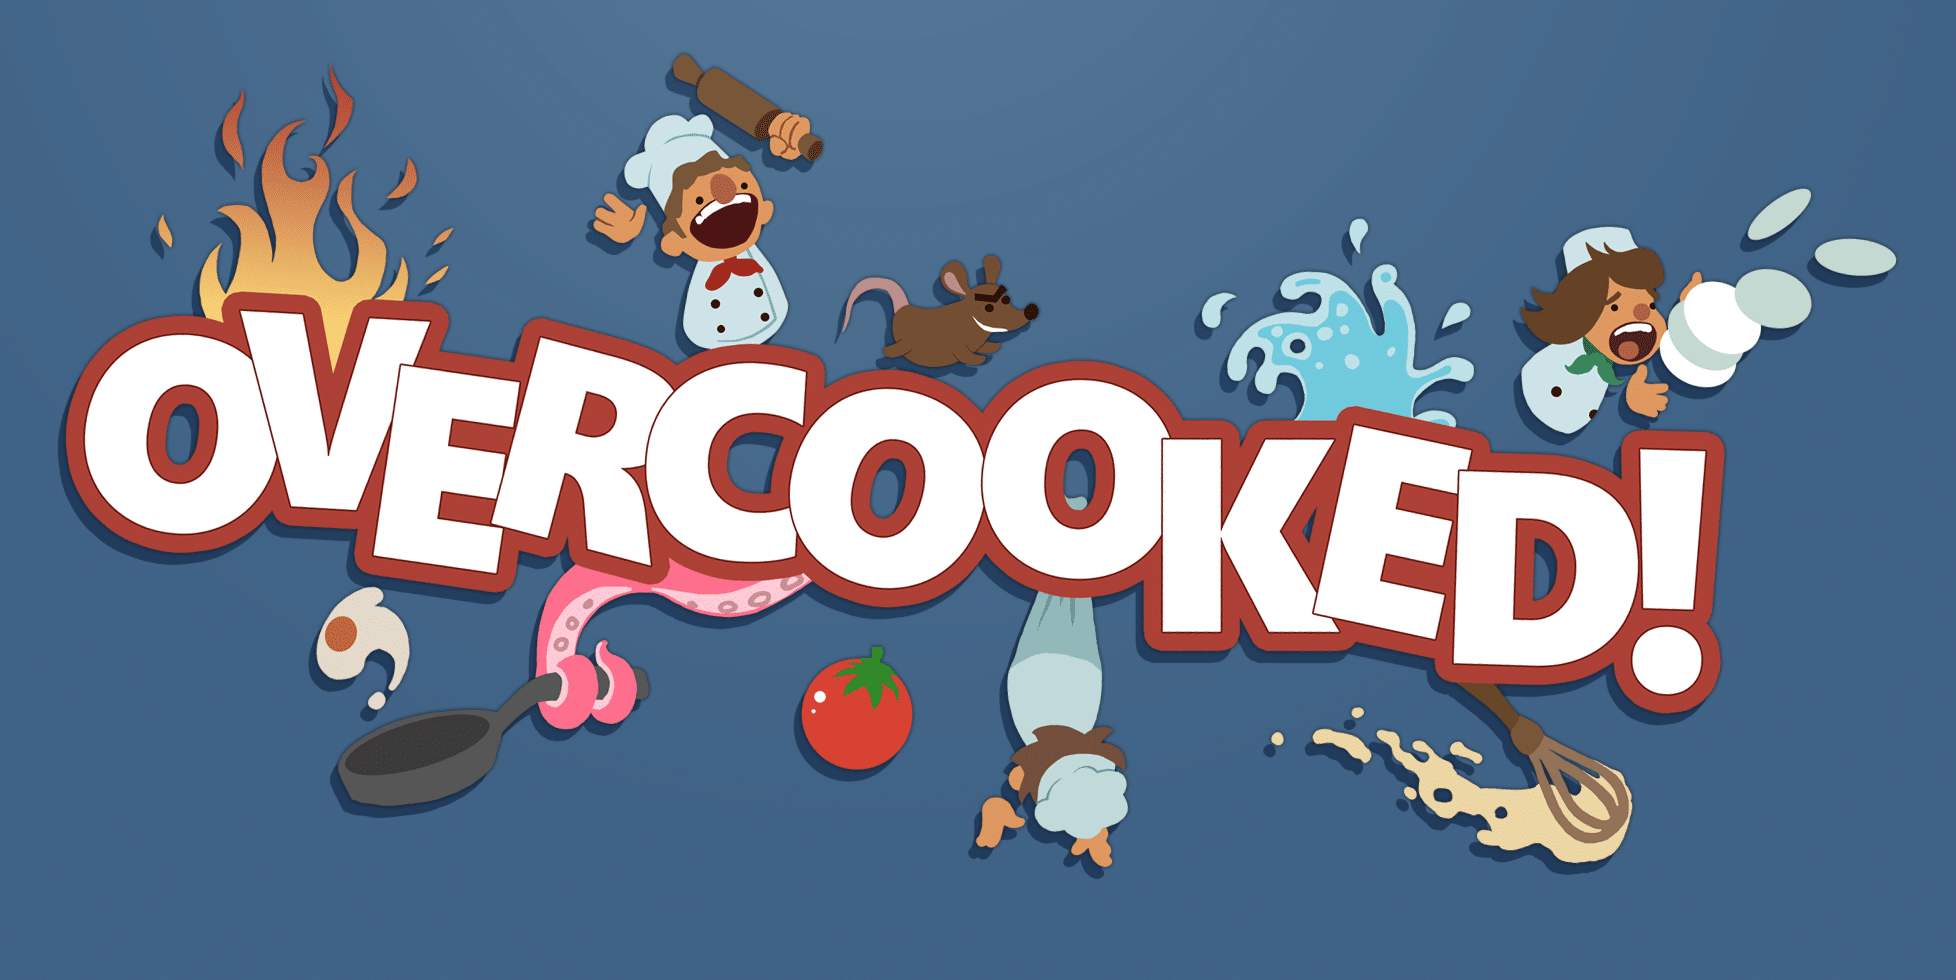 Overcooked - Best co-op games to play in Xbox one